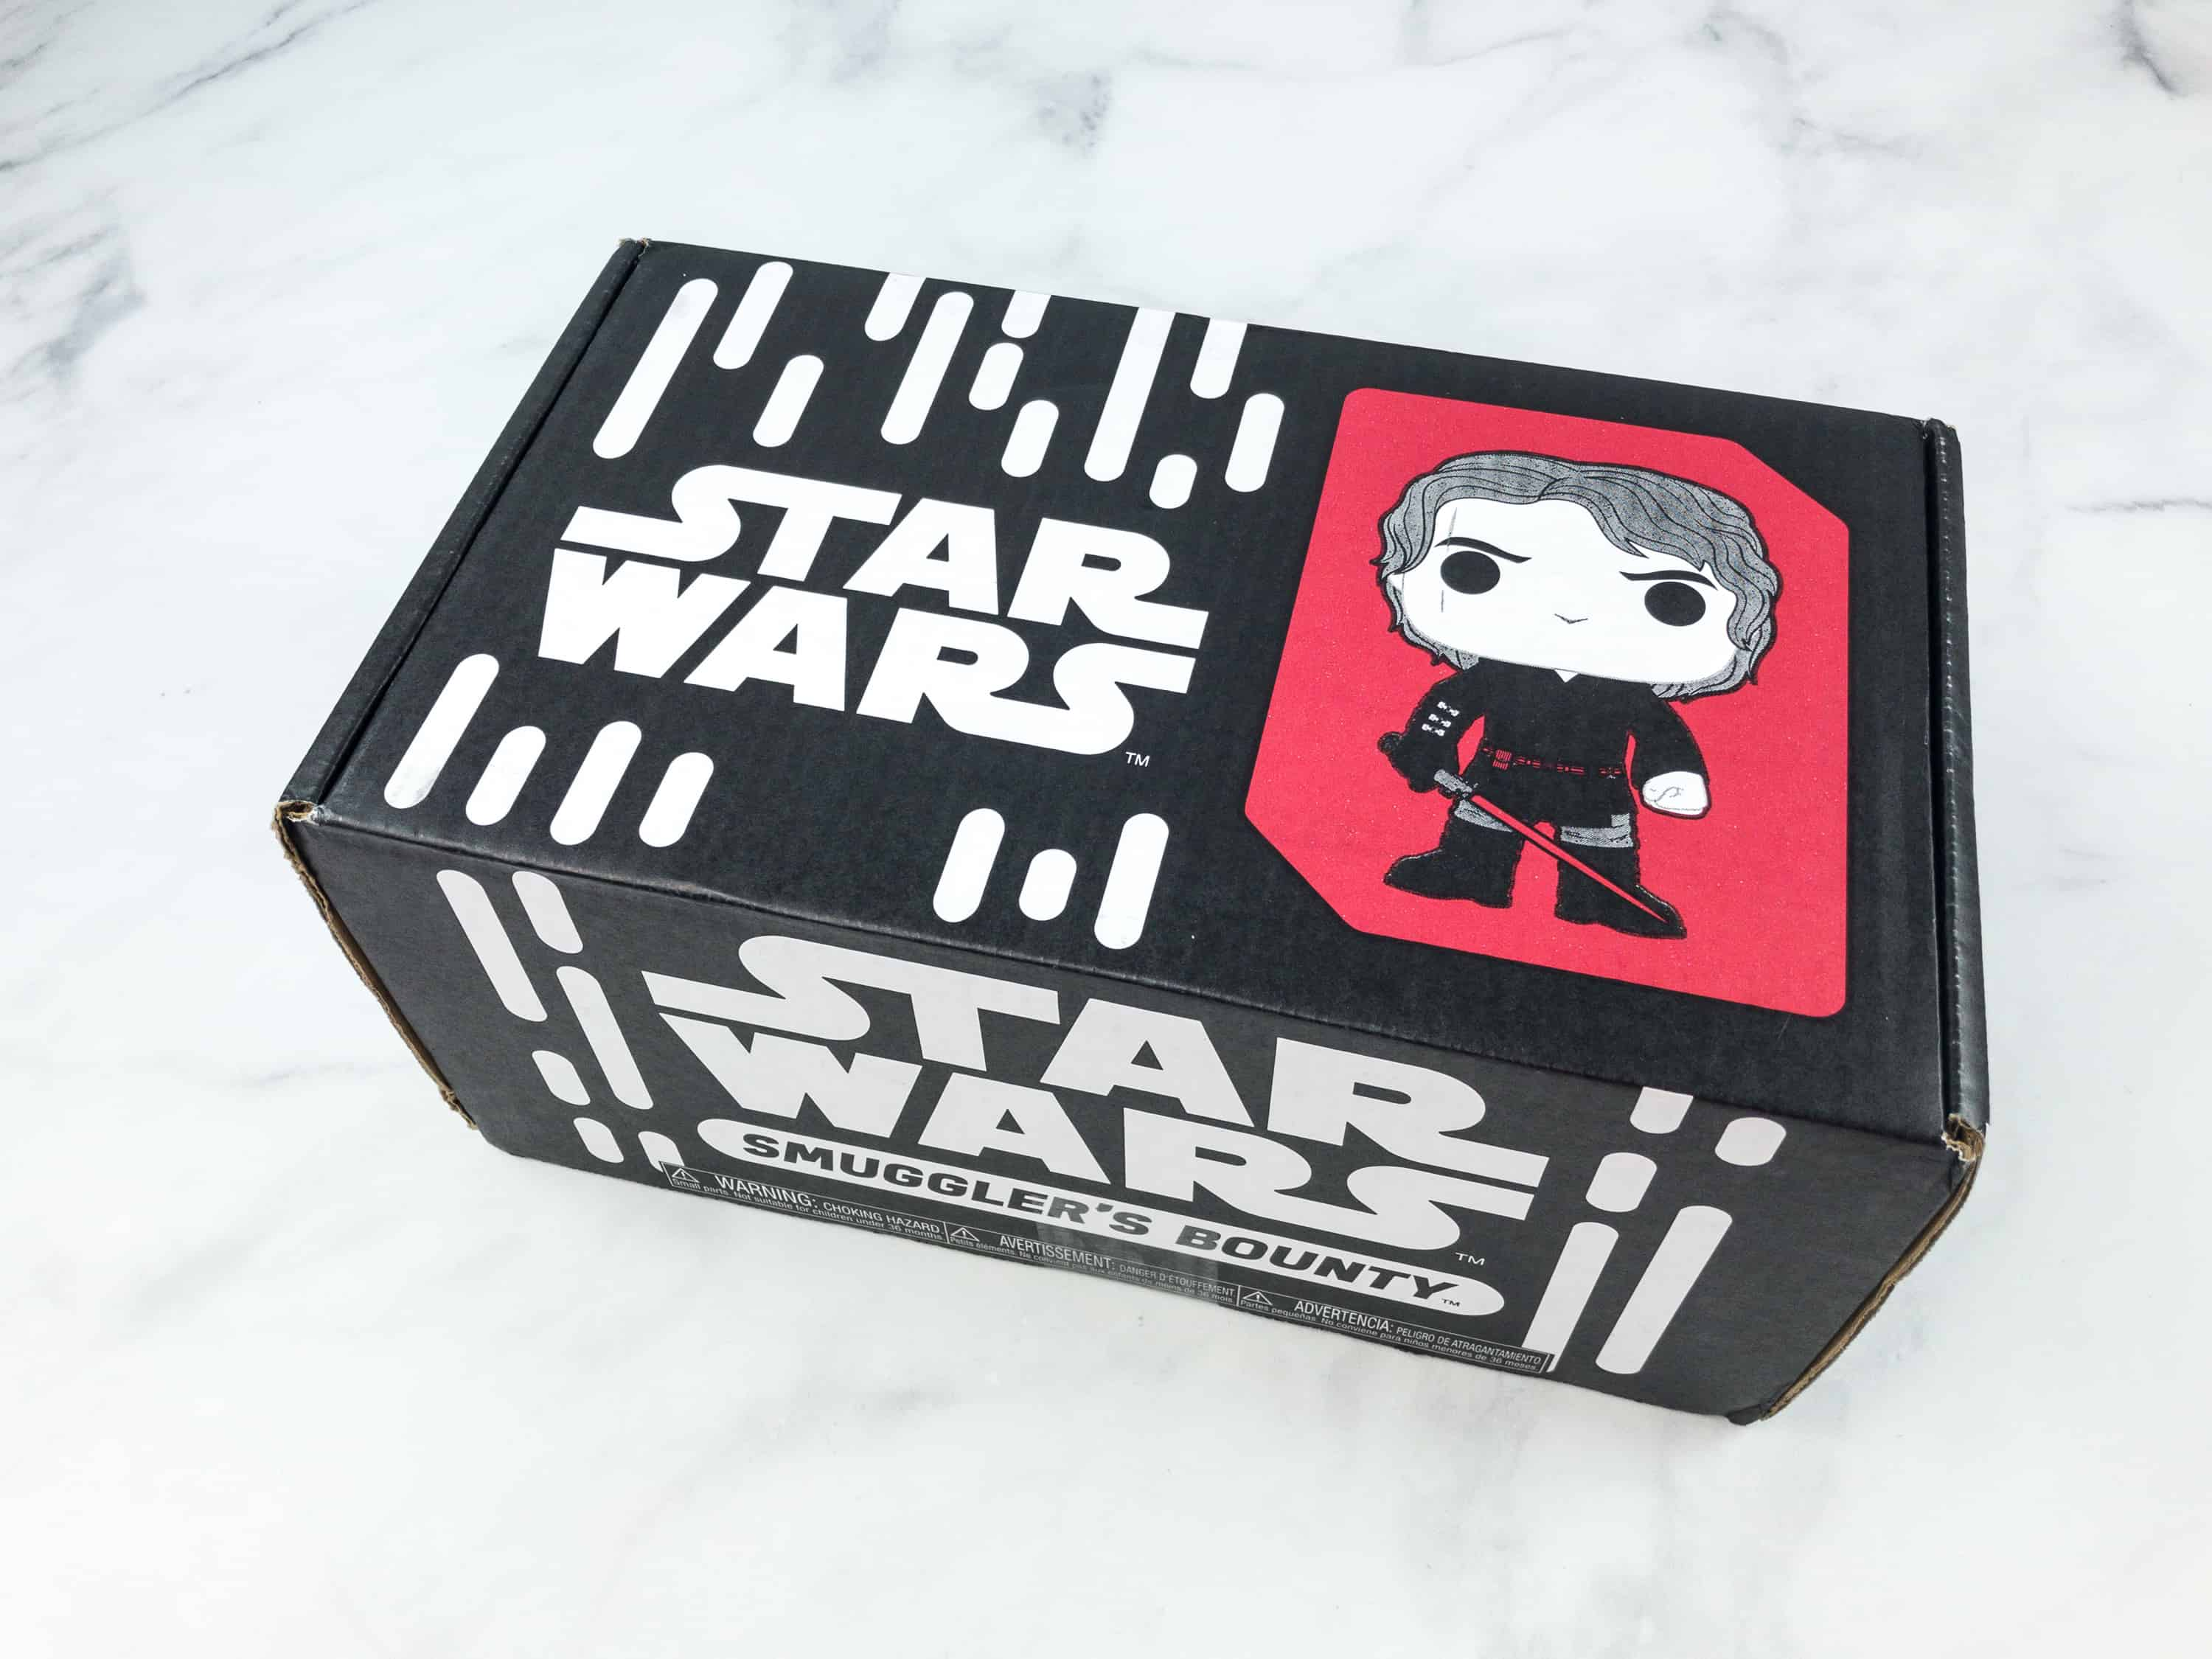 Smuggler S Bounty July 2018 Subscription Box Review Revenge Of The Sith Box Hello Subscription